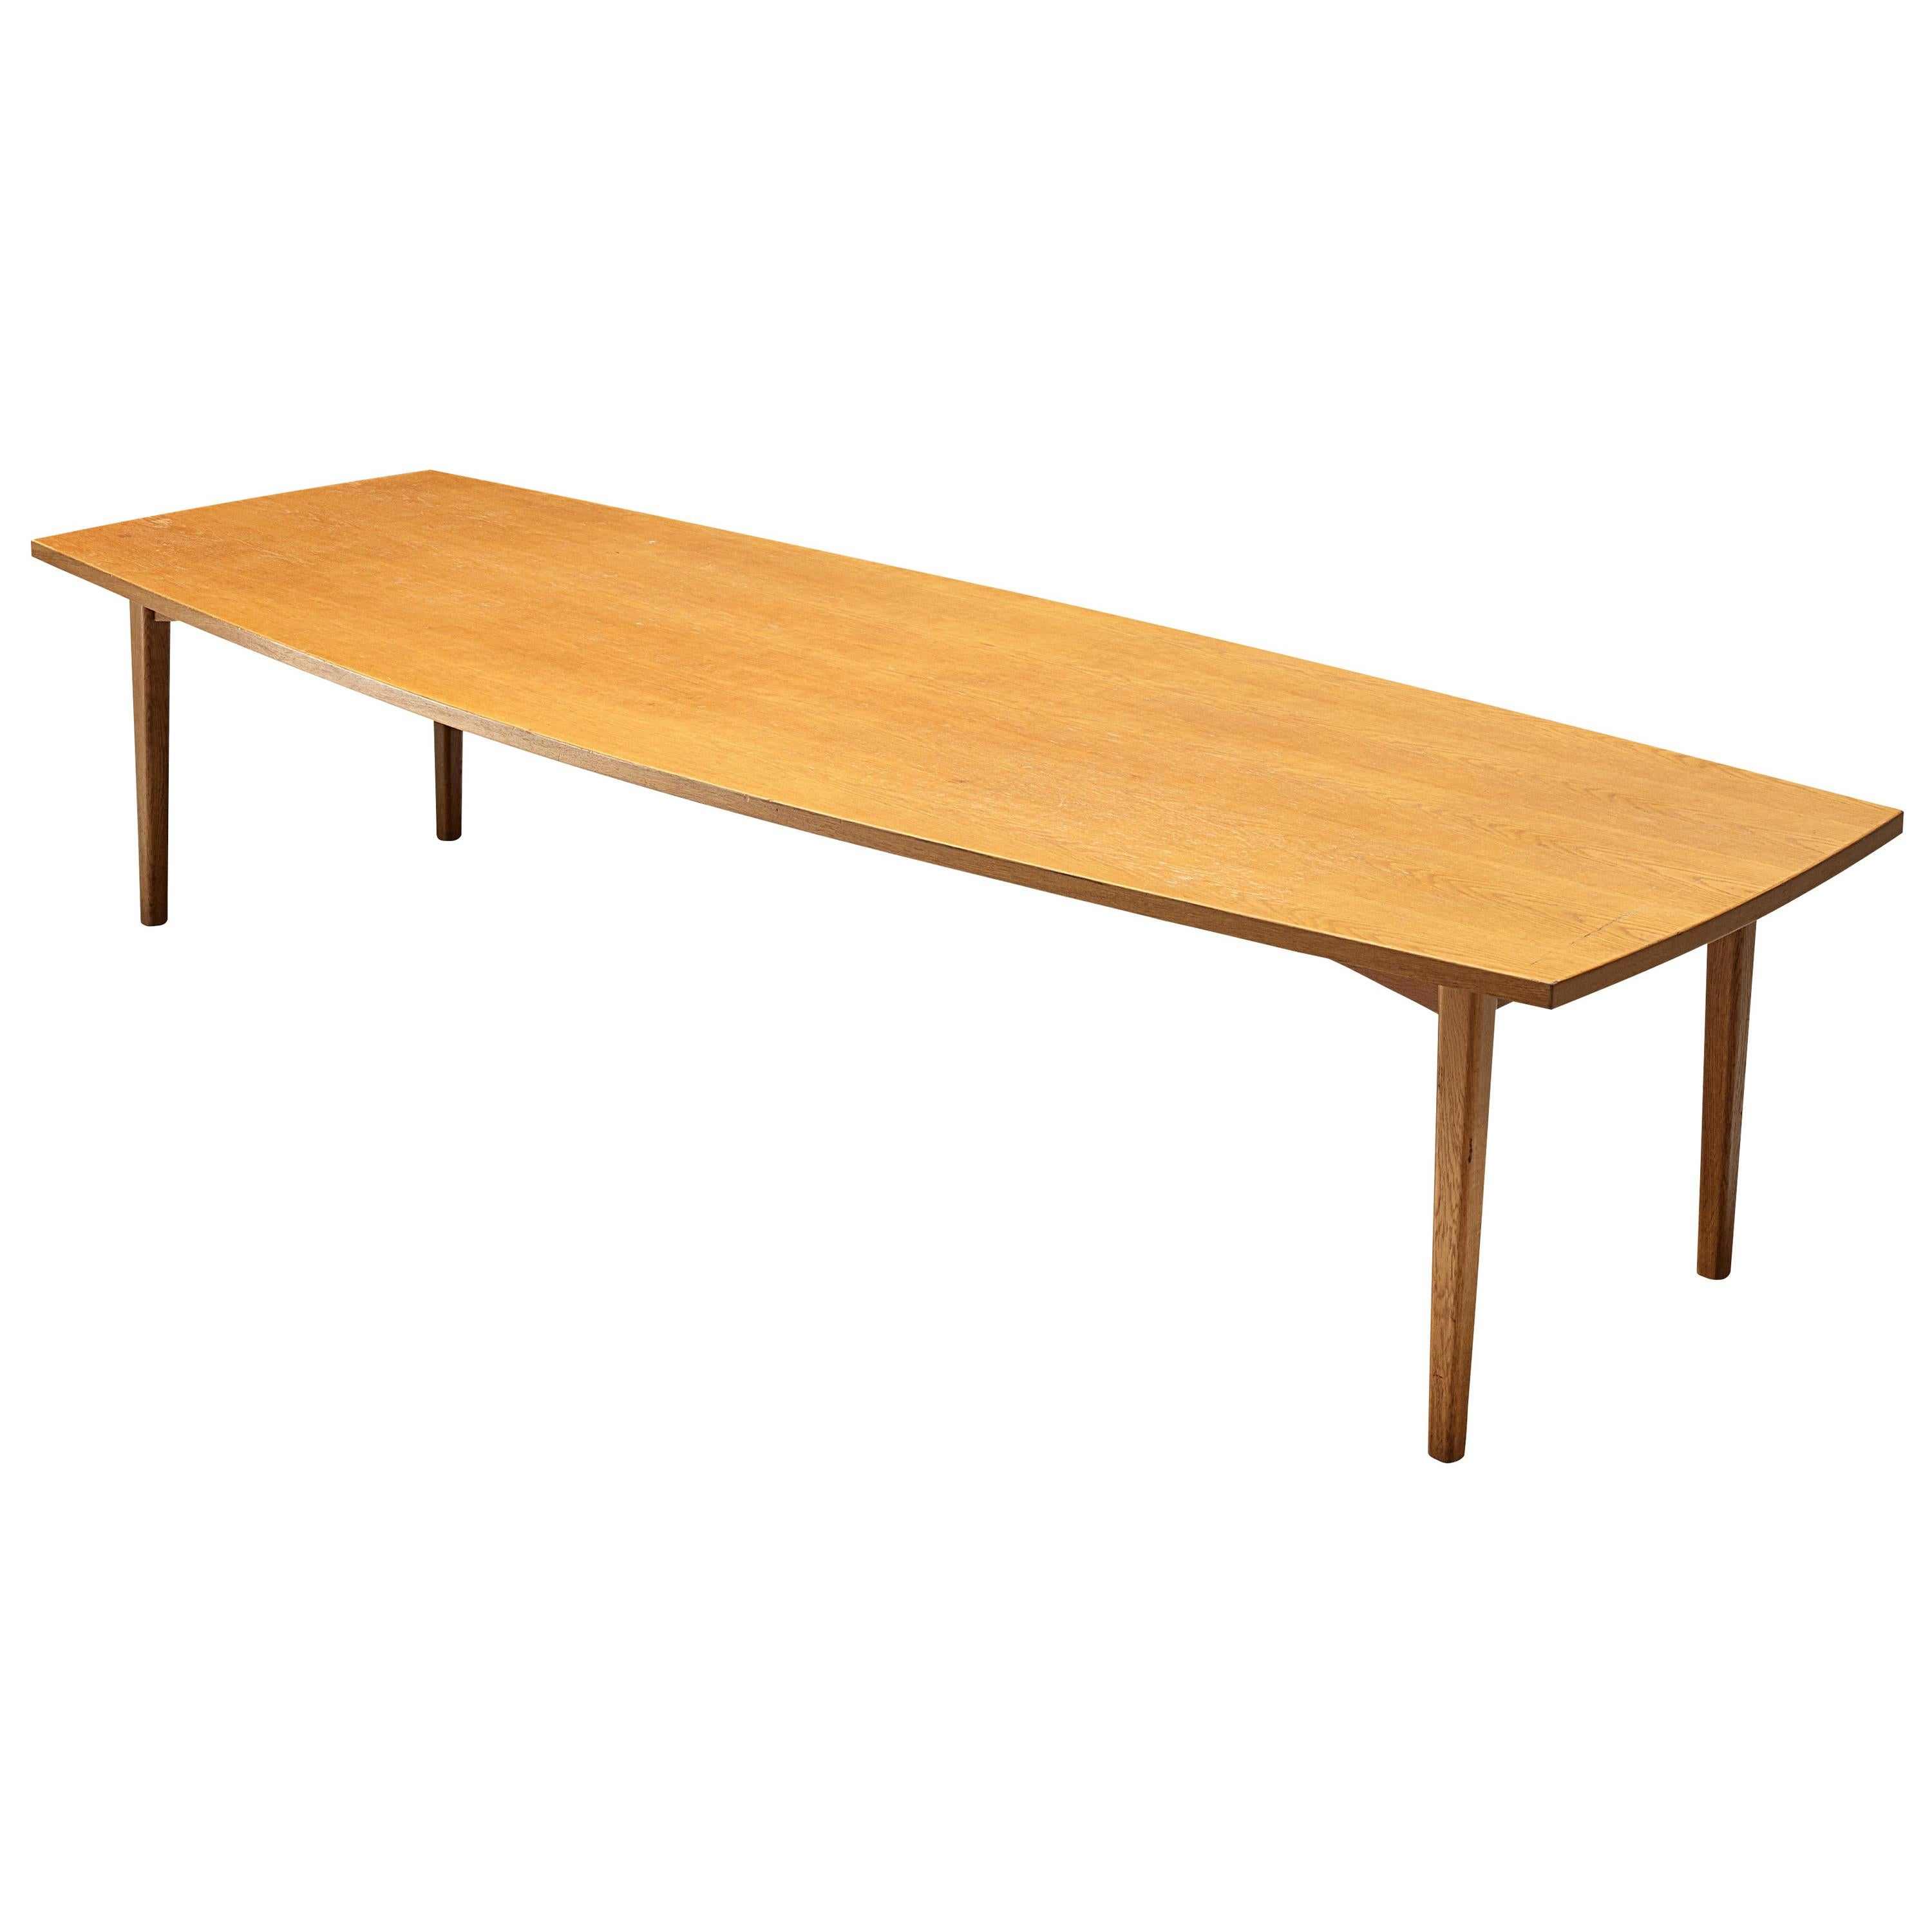 Large Danish Boat Shaped Conference Table in Oak